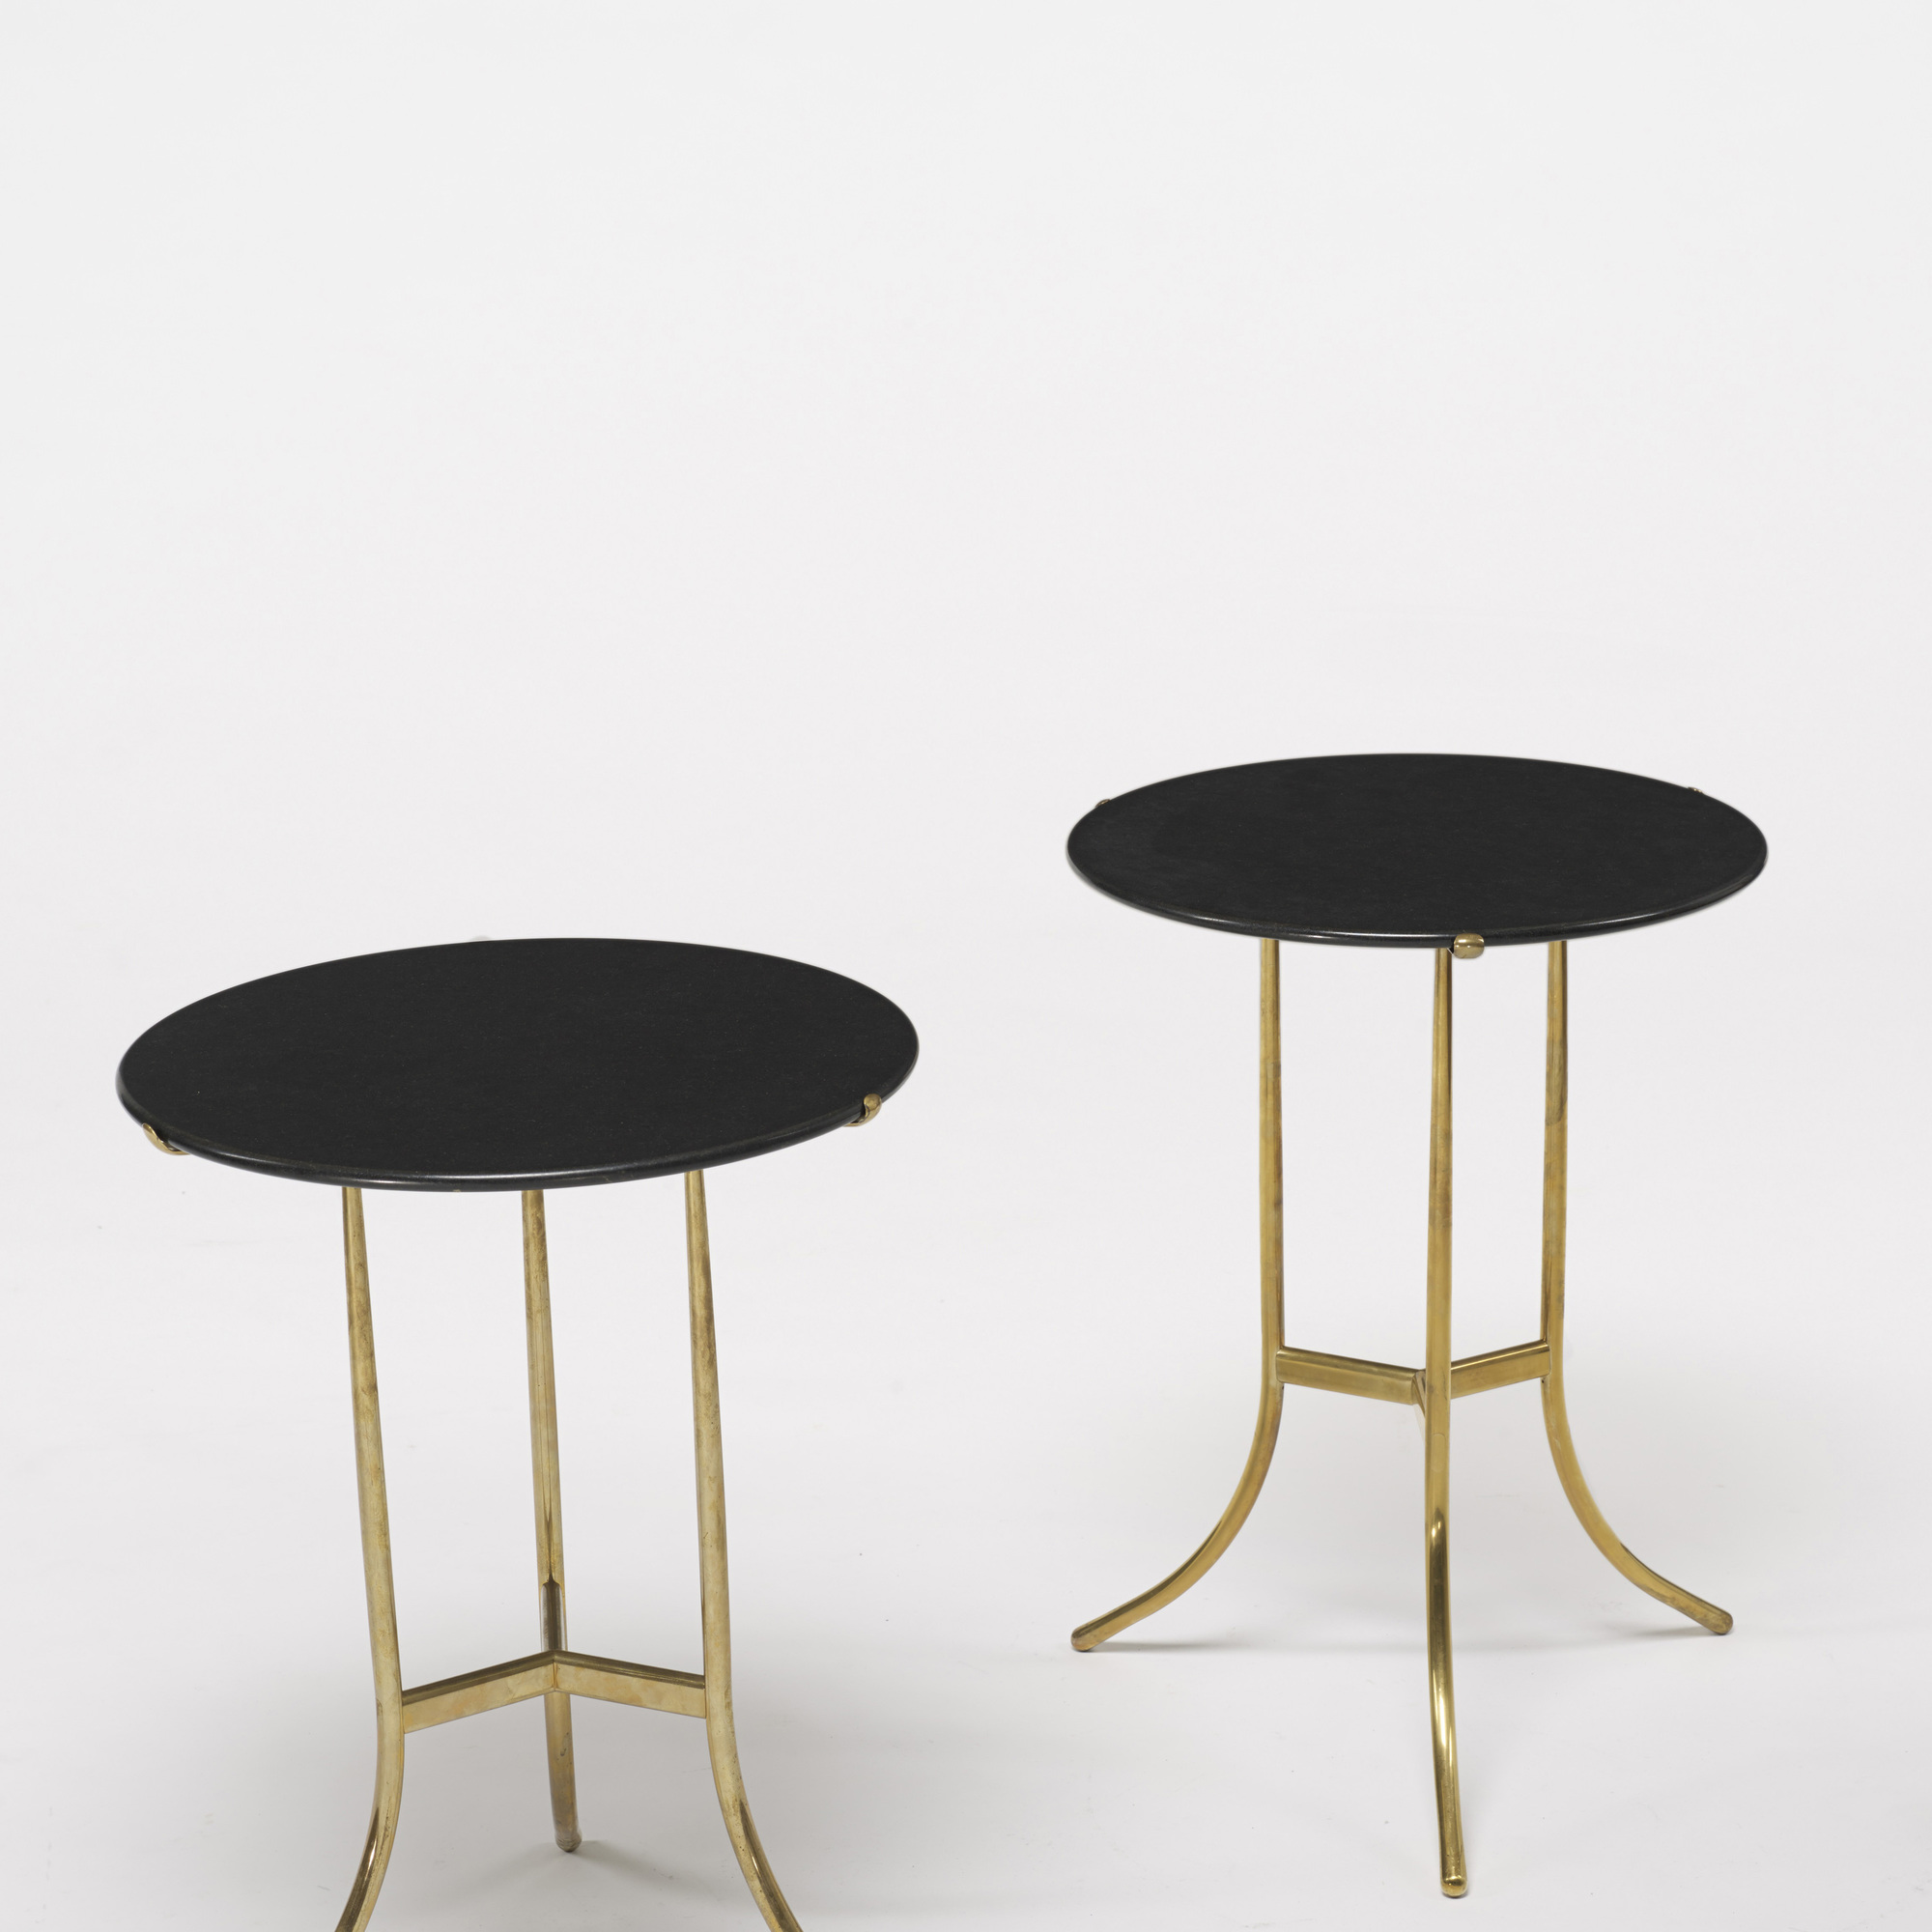 393: Cedric Hartman / occasional tables, pair (3 of 3)